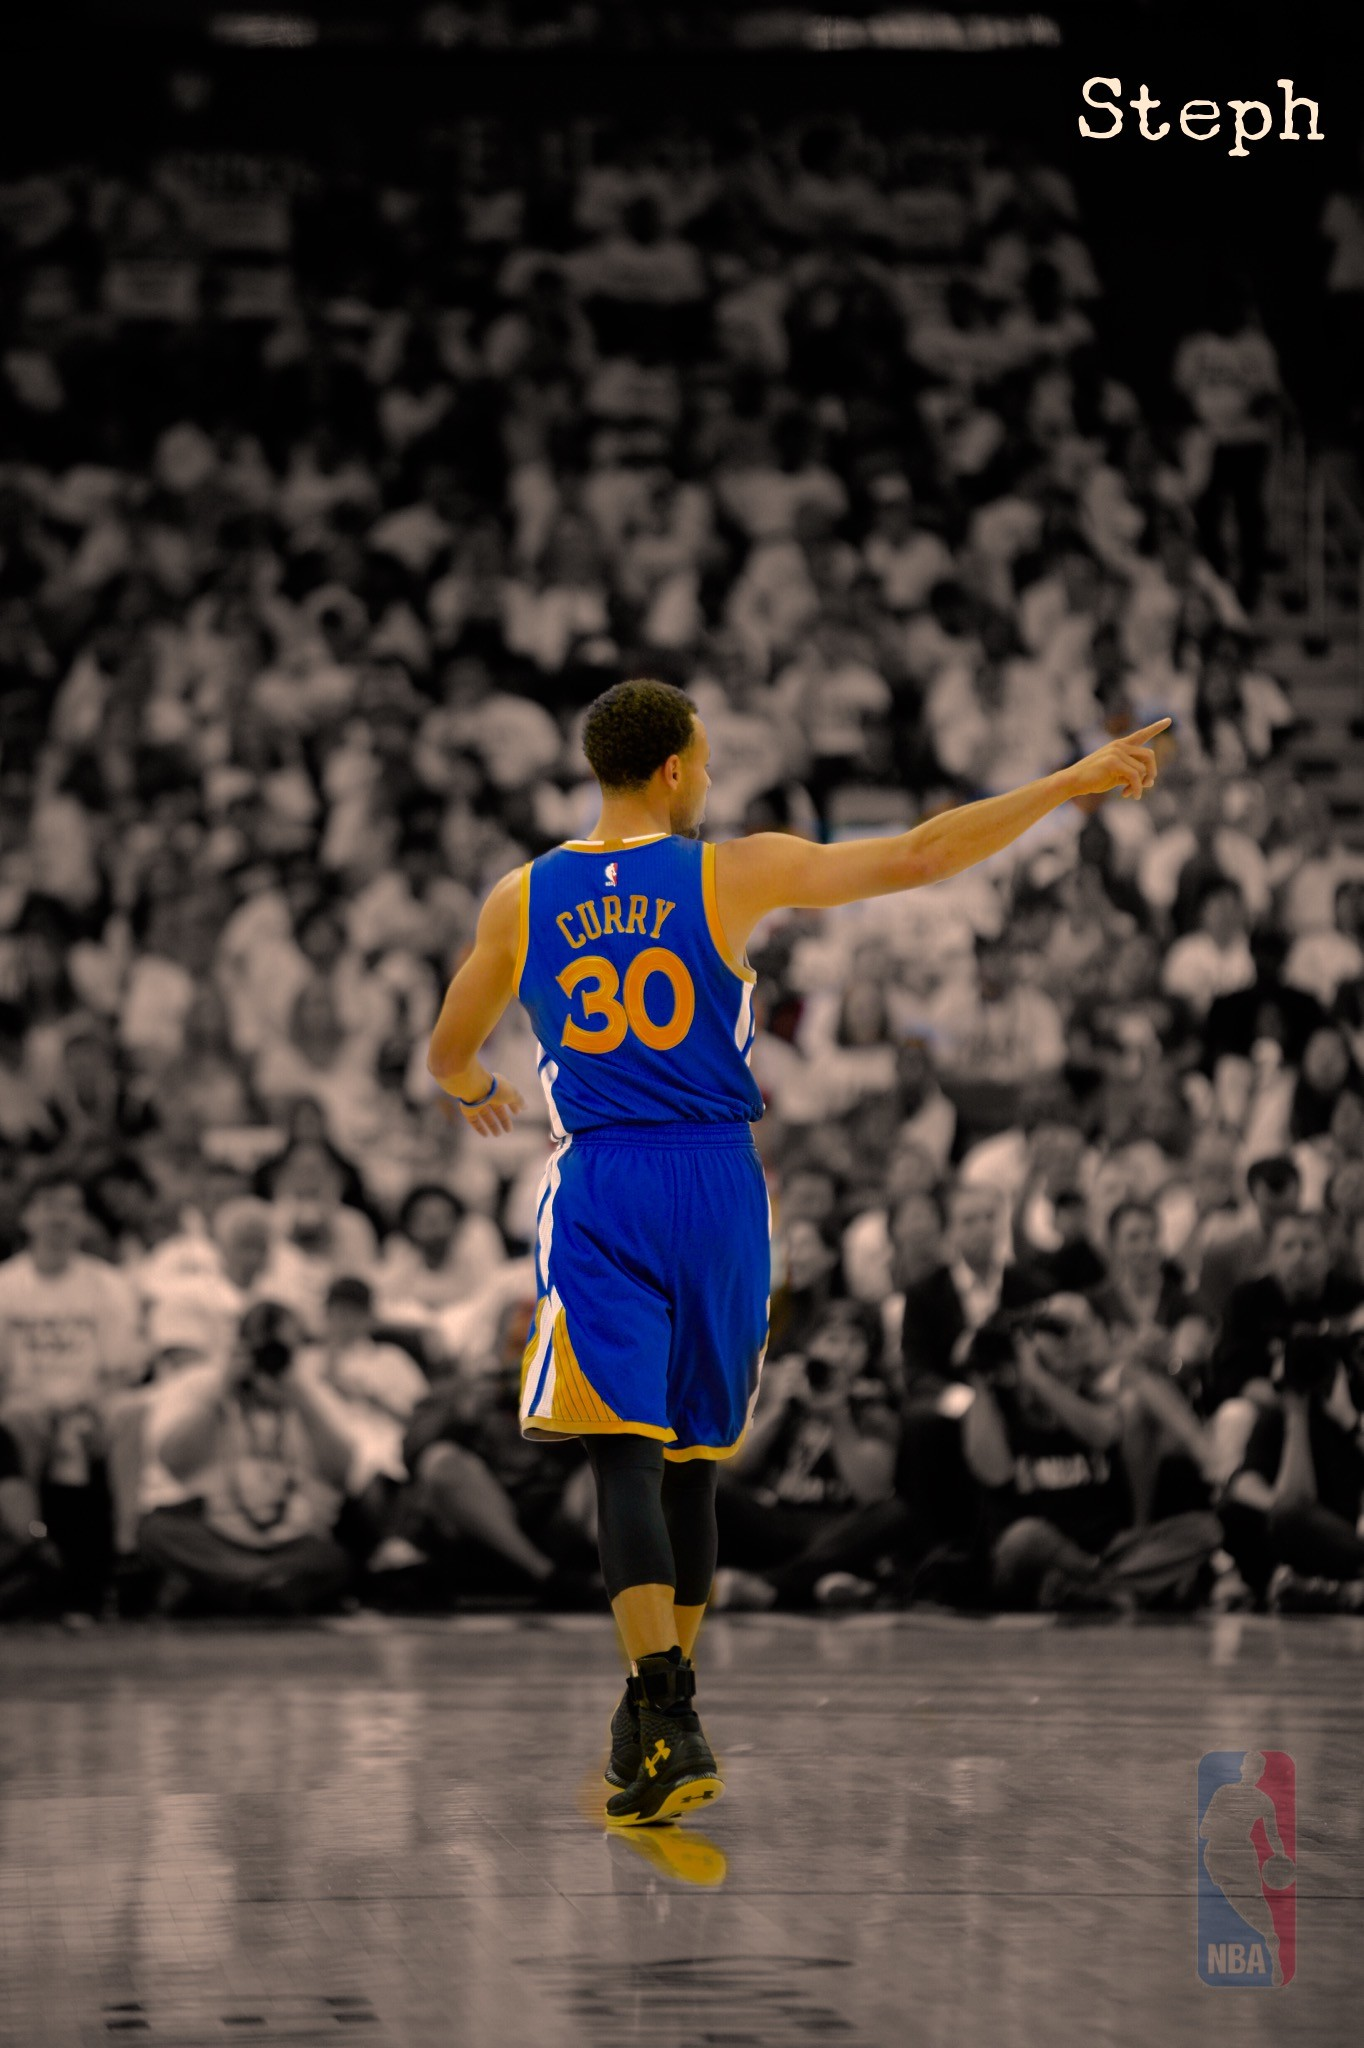 Wonderful Wallpaper Logo Stephen Curry - 27195  Collection_713621.jpg